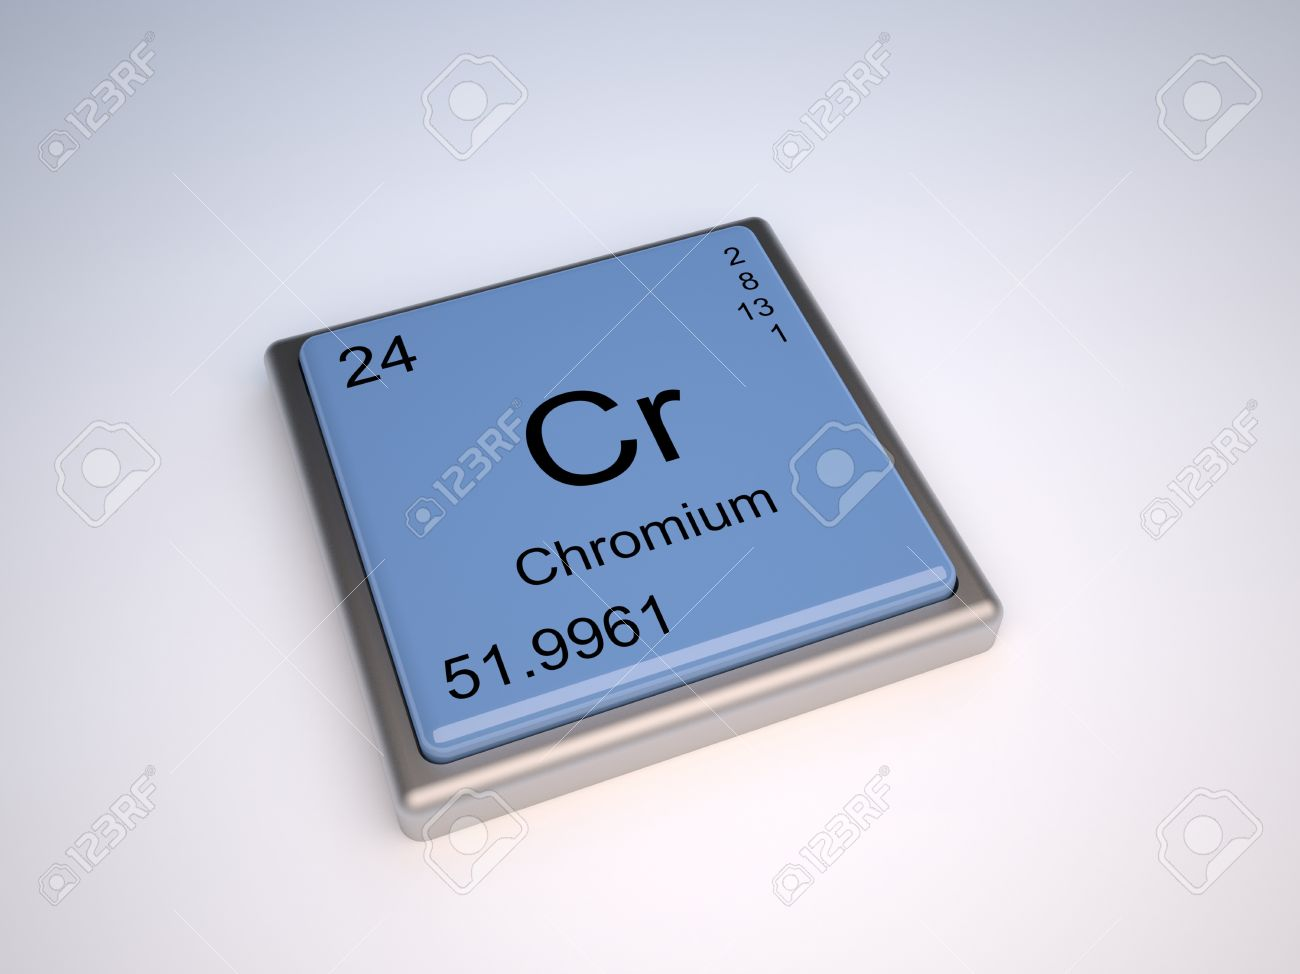 Chromium chemical element of the periodic table with symbol cr chromium chemical element of the periodic table with symbol cr stock photo 9257119 buycottarizona